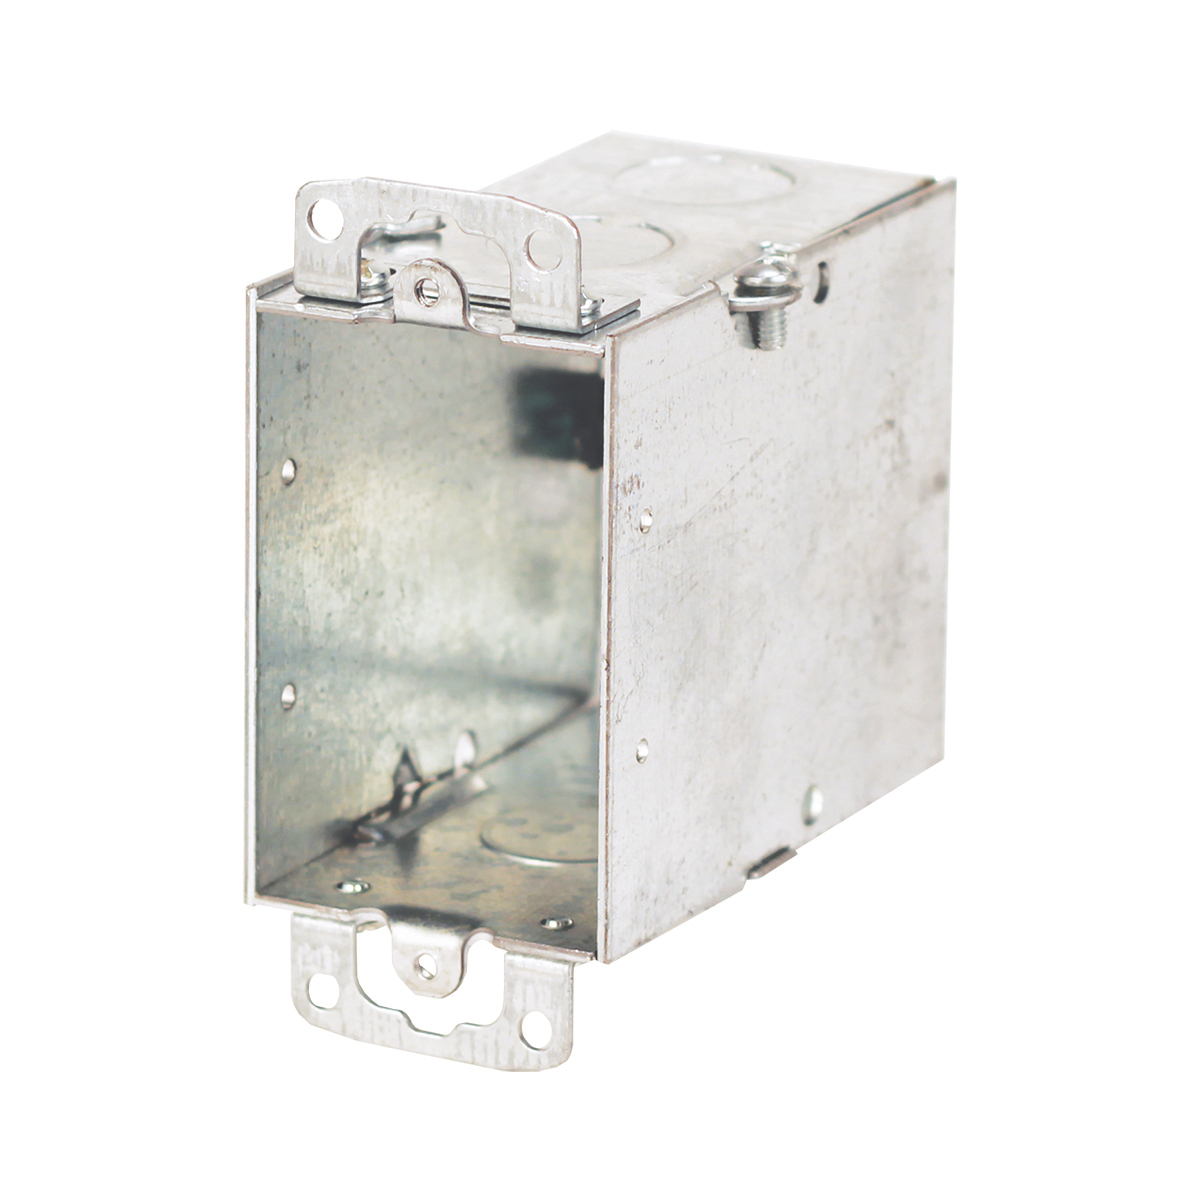 Gangable Switch Box, 18 Cubic Inches, 3 Inches Long x 2 Inches Wide x 3-1/2 Inches Deep, 1/2 Inch Knockouts, Pre-Galvanized Steel, Ears Flush and Ground Screw, For use with Conduit